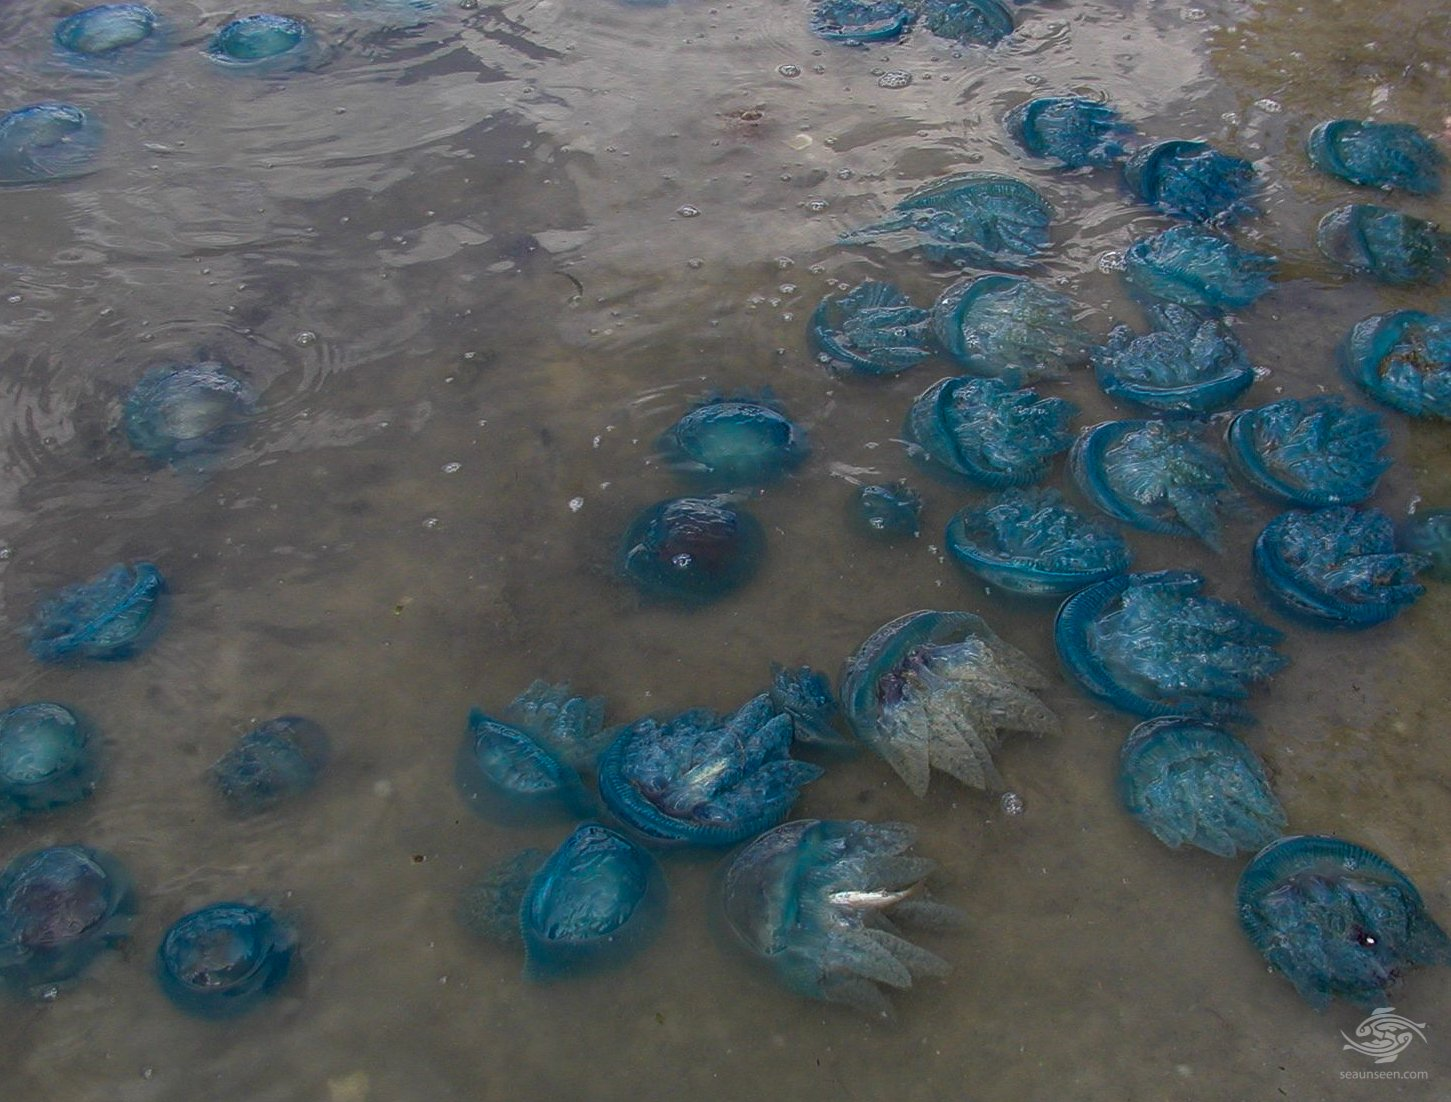 Blue blubber jellyfish washed up onto the beach